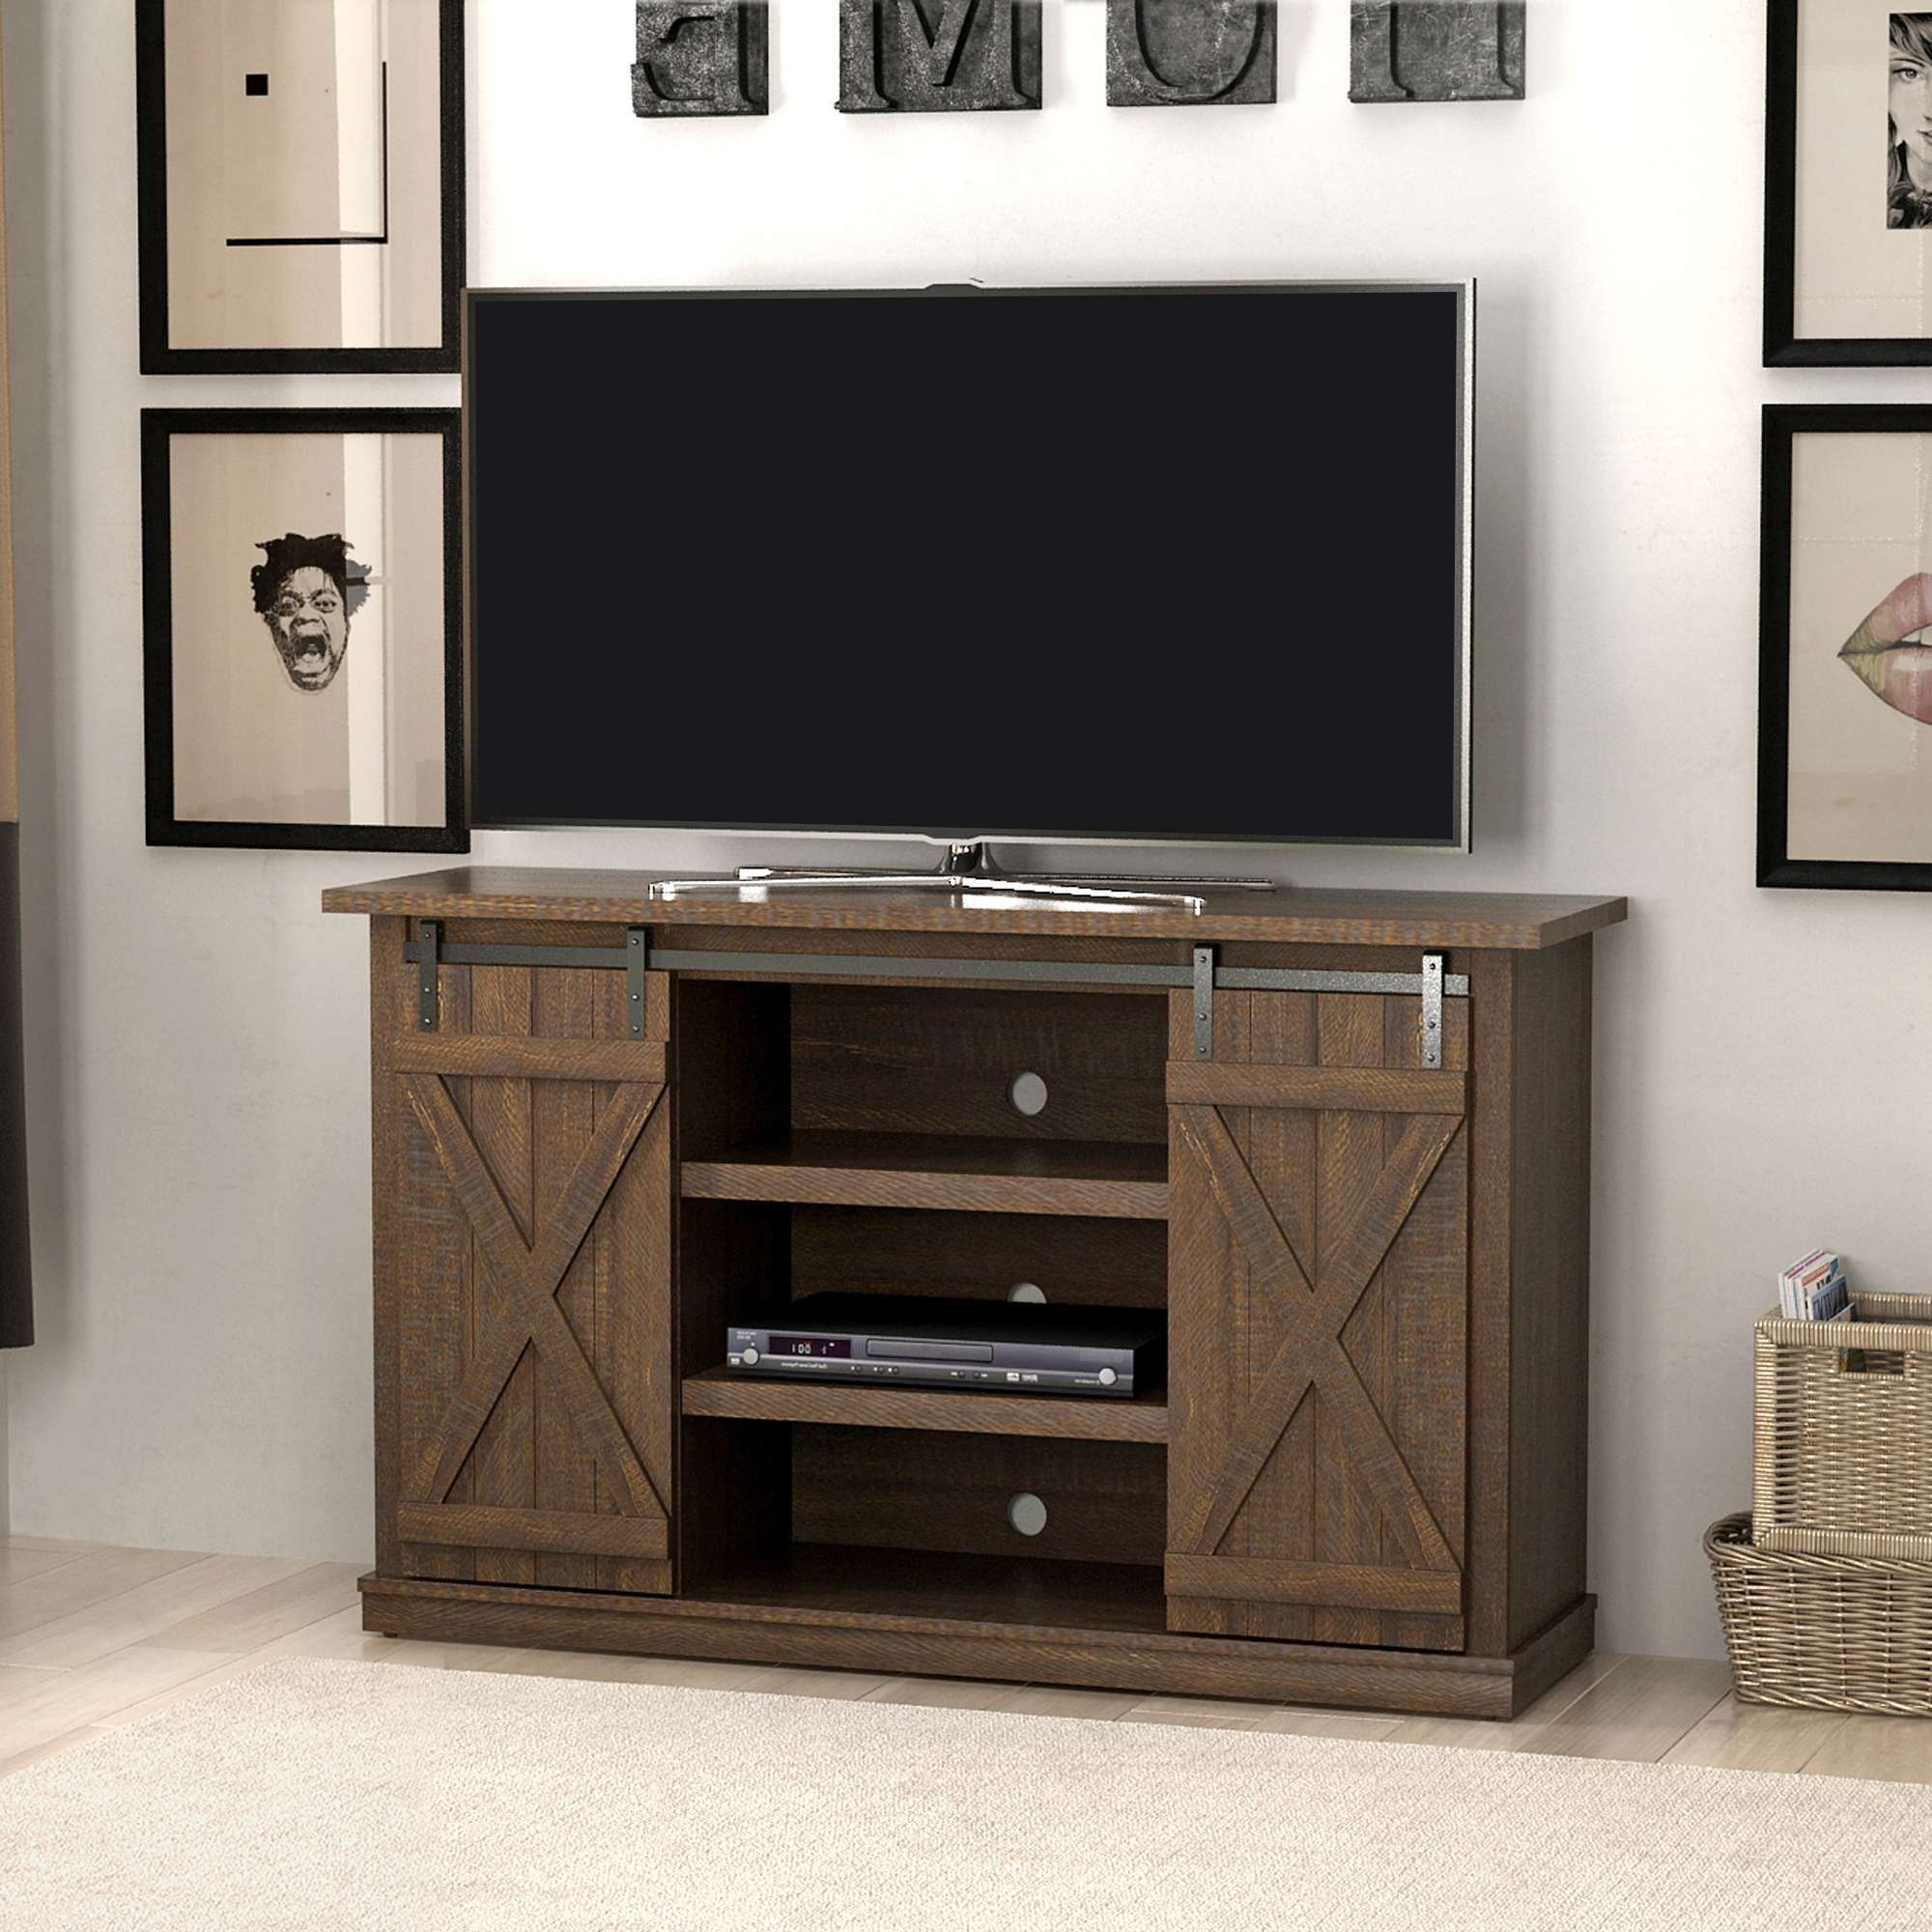 Tv Stands – Walmart With 24 Inch Tall Tv Stands (View 13 of 15)